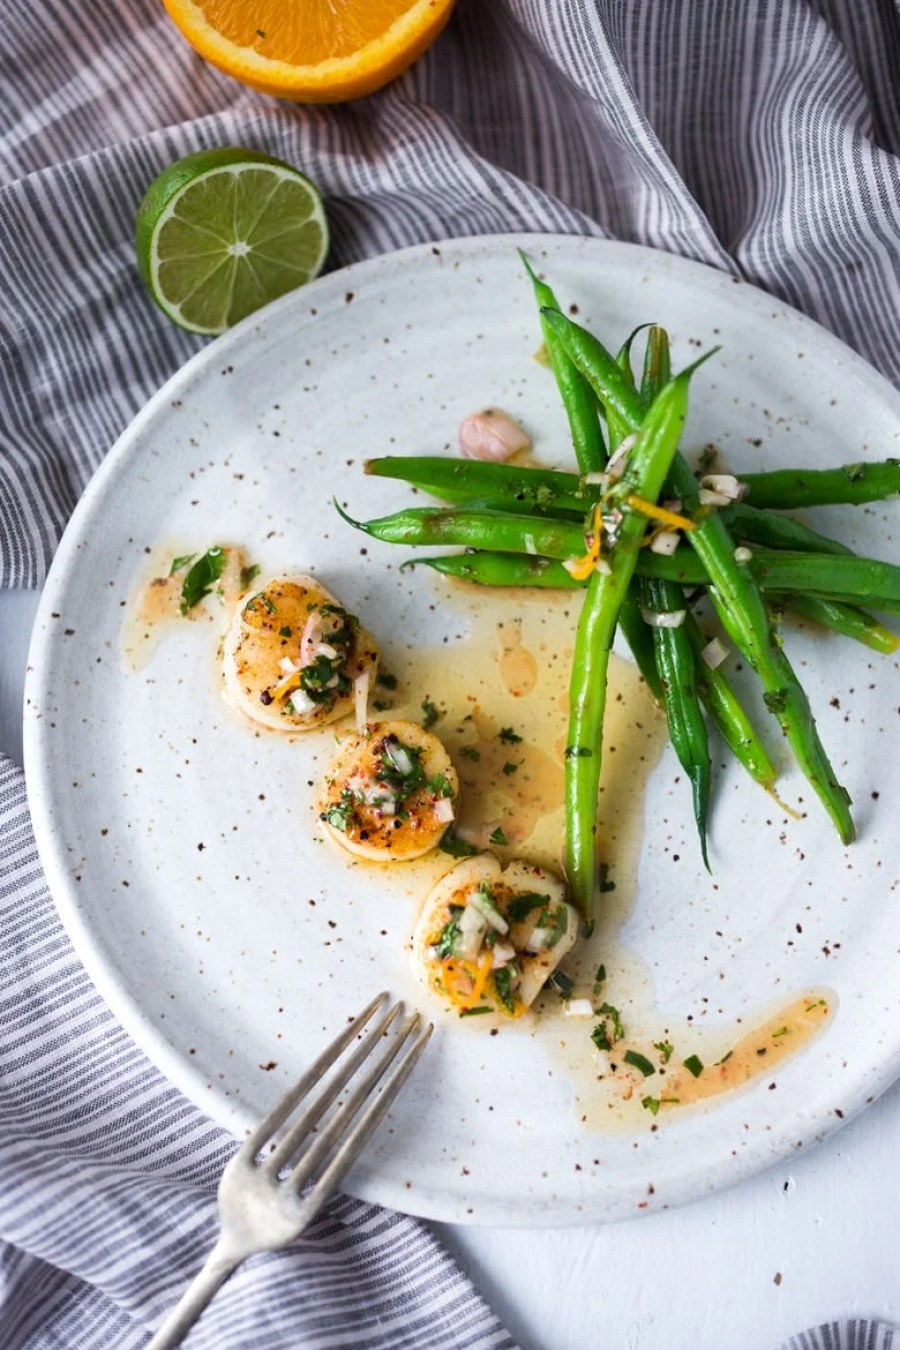 Seared Scallops with Orange-Lime Dressing served with green beans - a light and healthy meal that can be made in 20 minutes! | www.feastingathome.com